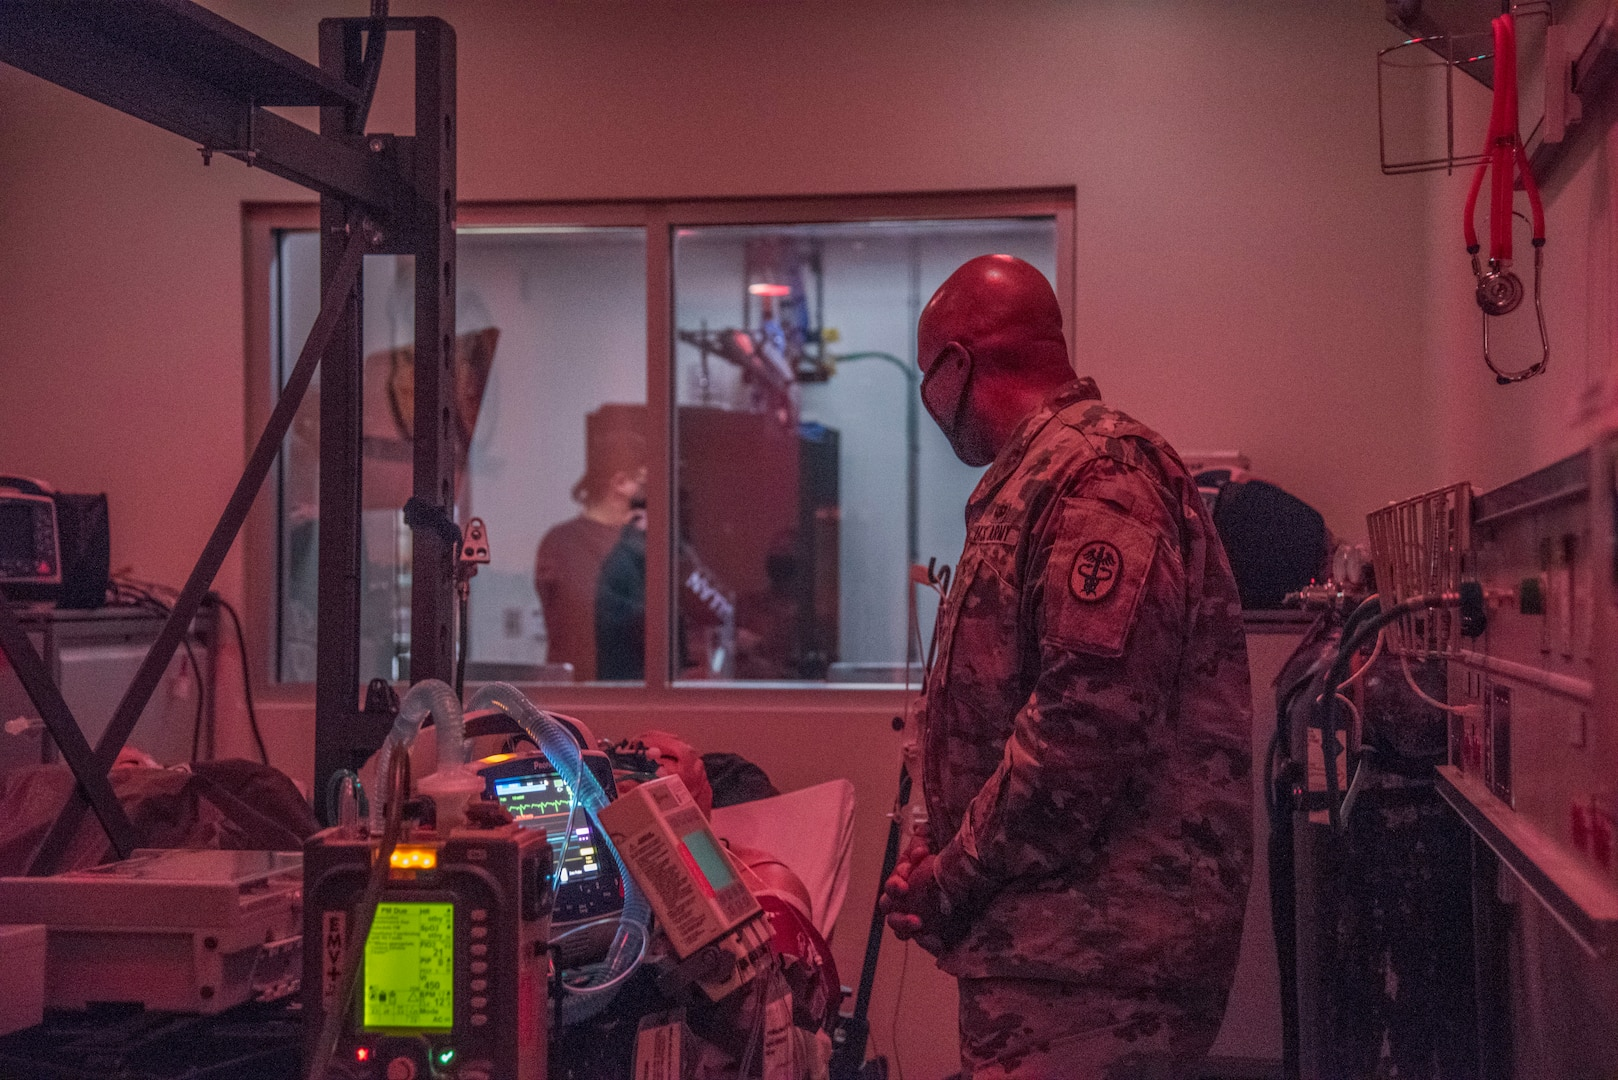 U.S. Army Brig. Gen. Shan K. Bagby, Brooke Army Medical Center commanding general, tours a Critical Care Air Transport simulation room, Nov. 23, 2020, in the 59th Medical Wing Medical Simulation Center, Wilford Hall Ambulatory Surgical Center, Joint Base San Antonio-Lackland, Texas.